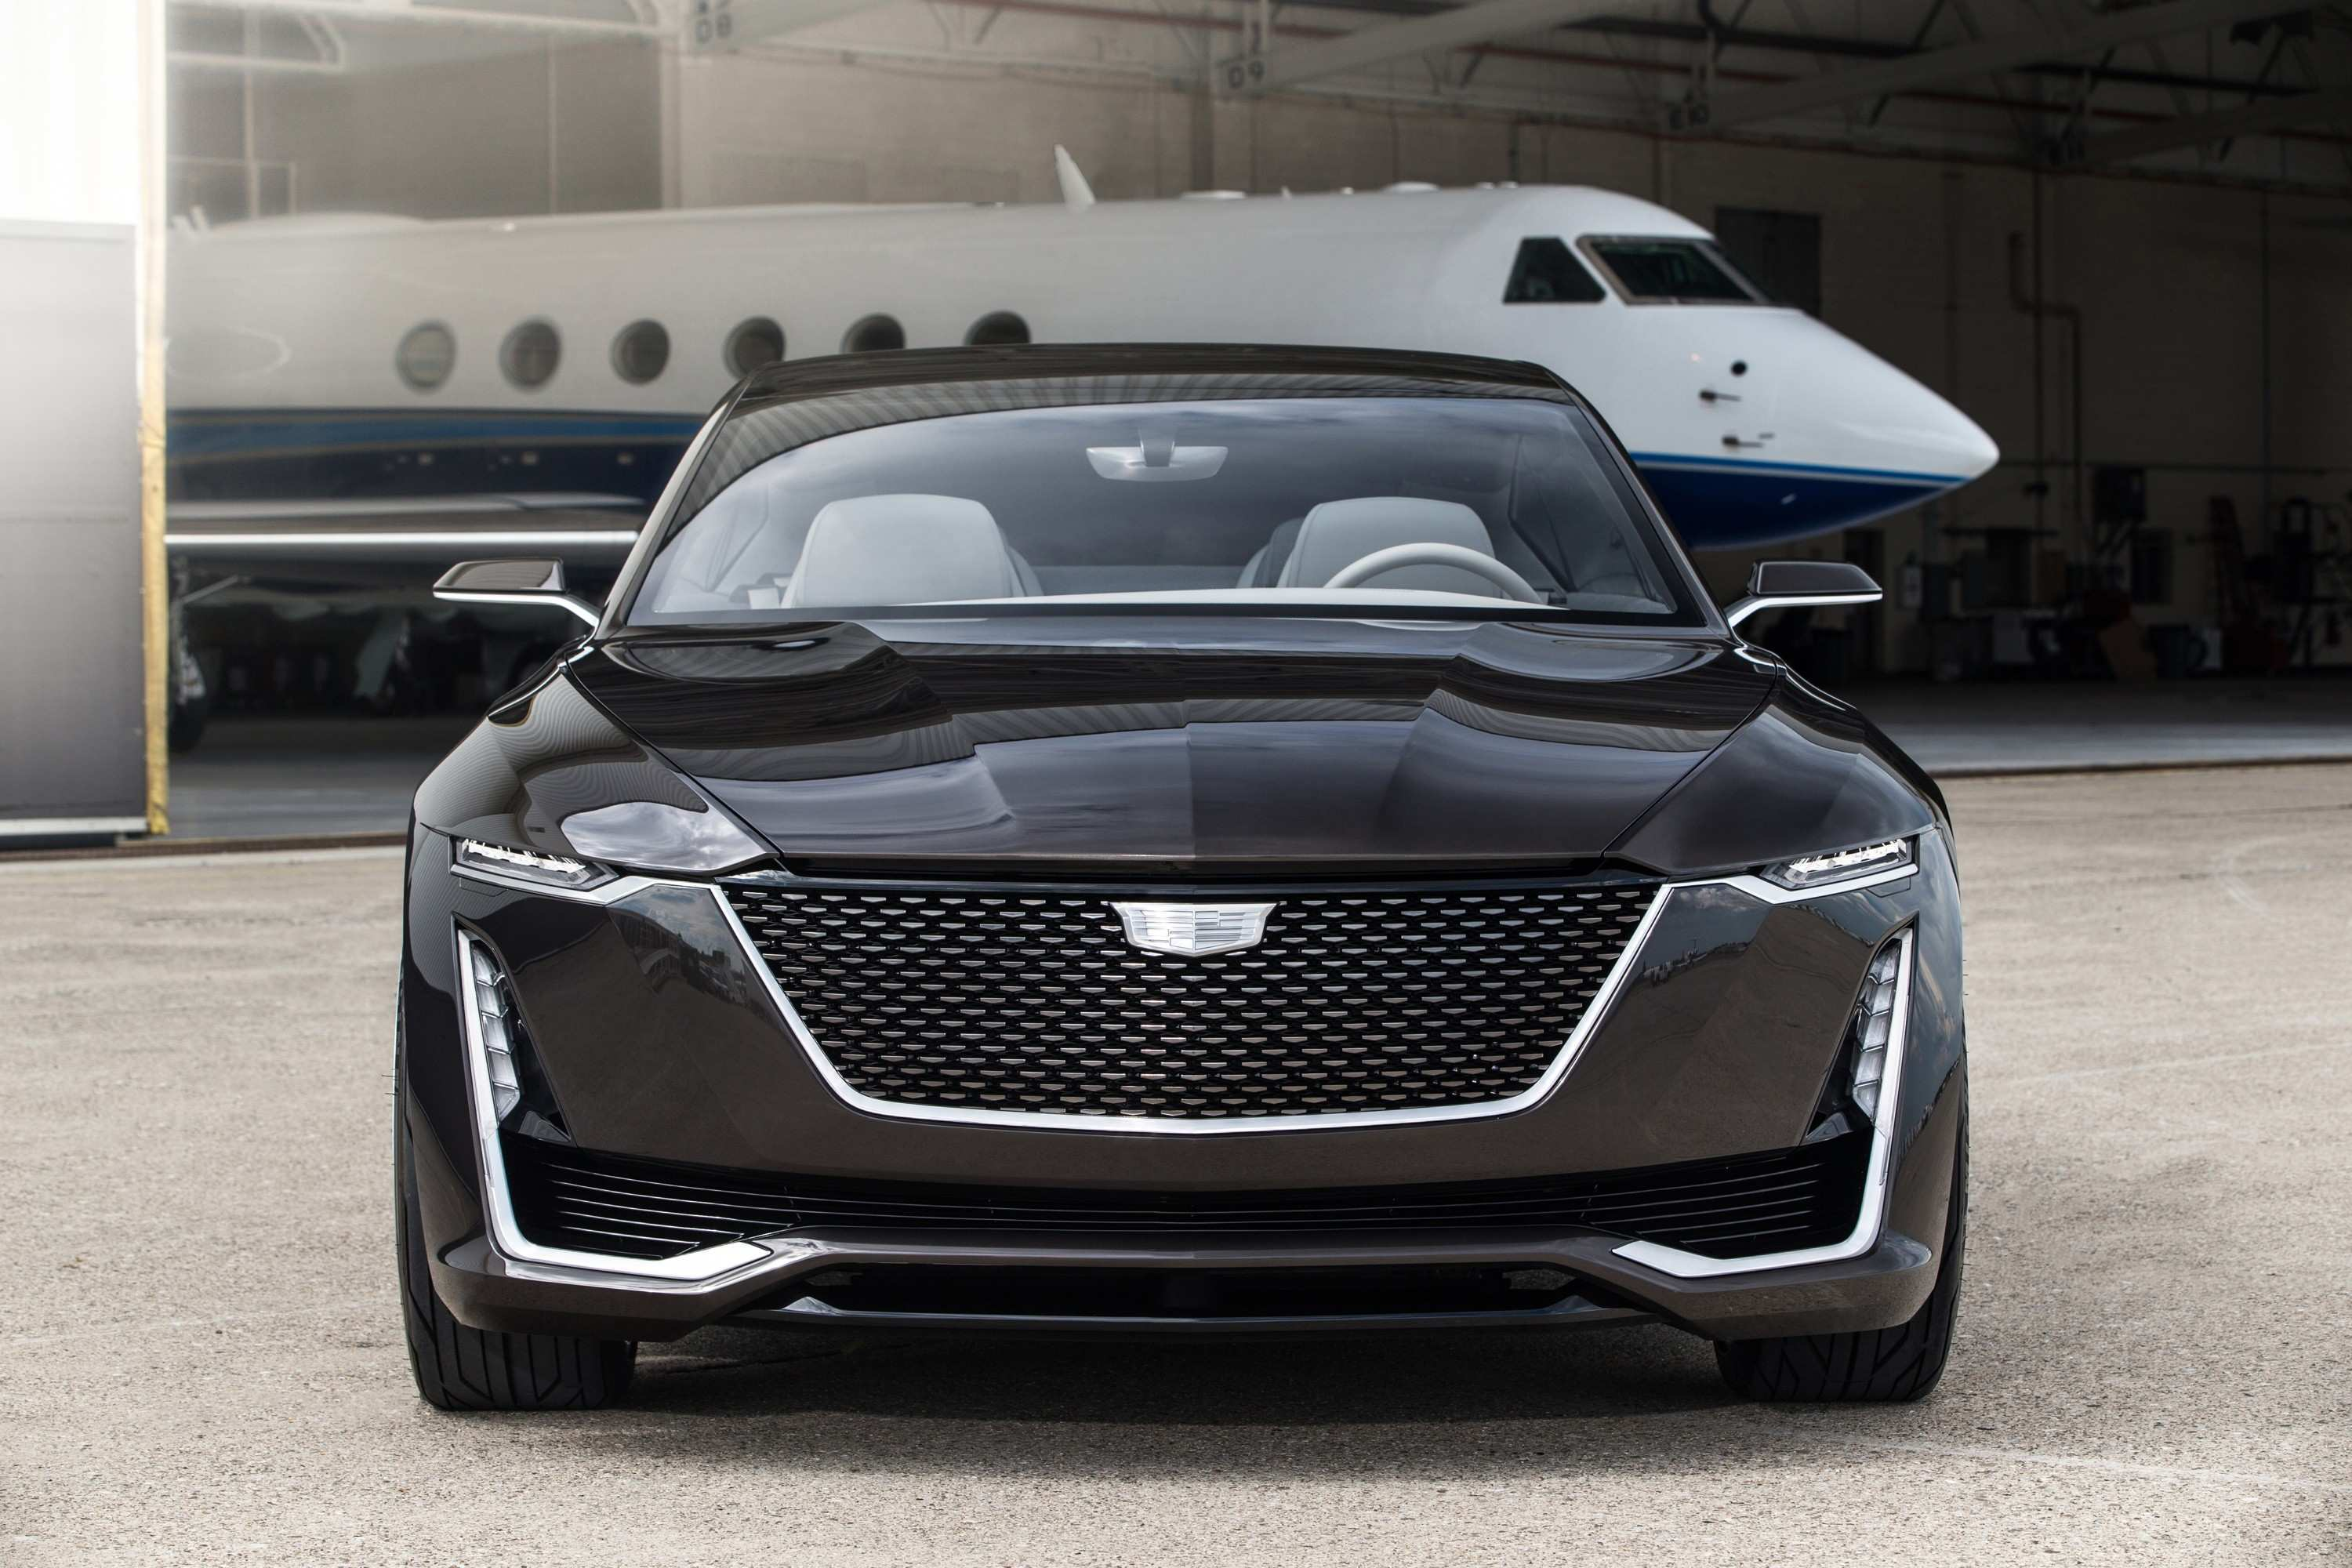 49 Best Cadillac Ats V 2020 Price Design And Review